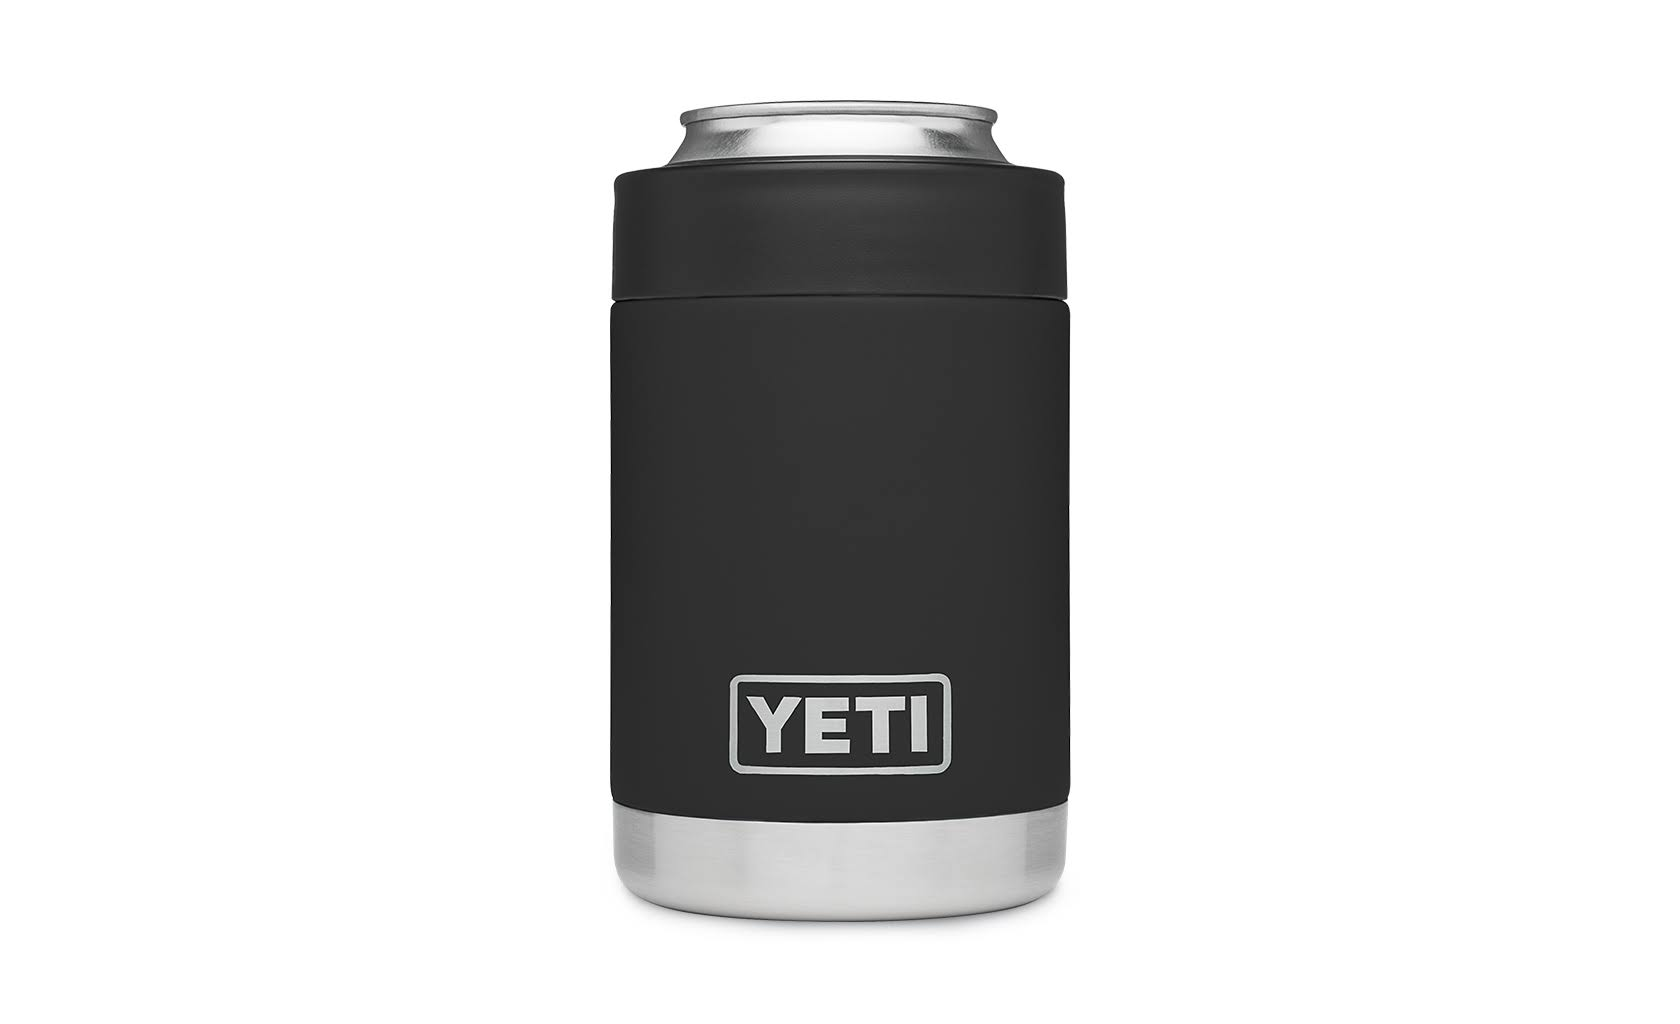 YETI Rambler Colster Insulated Stainless Steel Koozie - Black